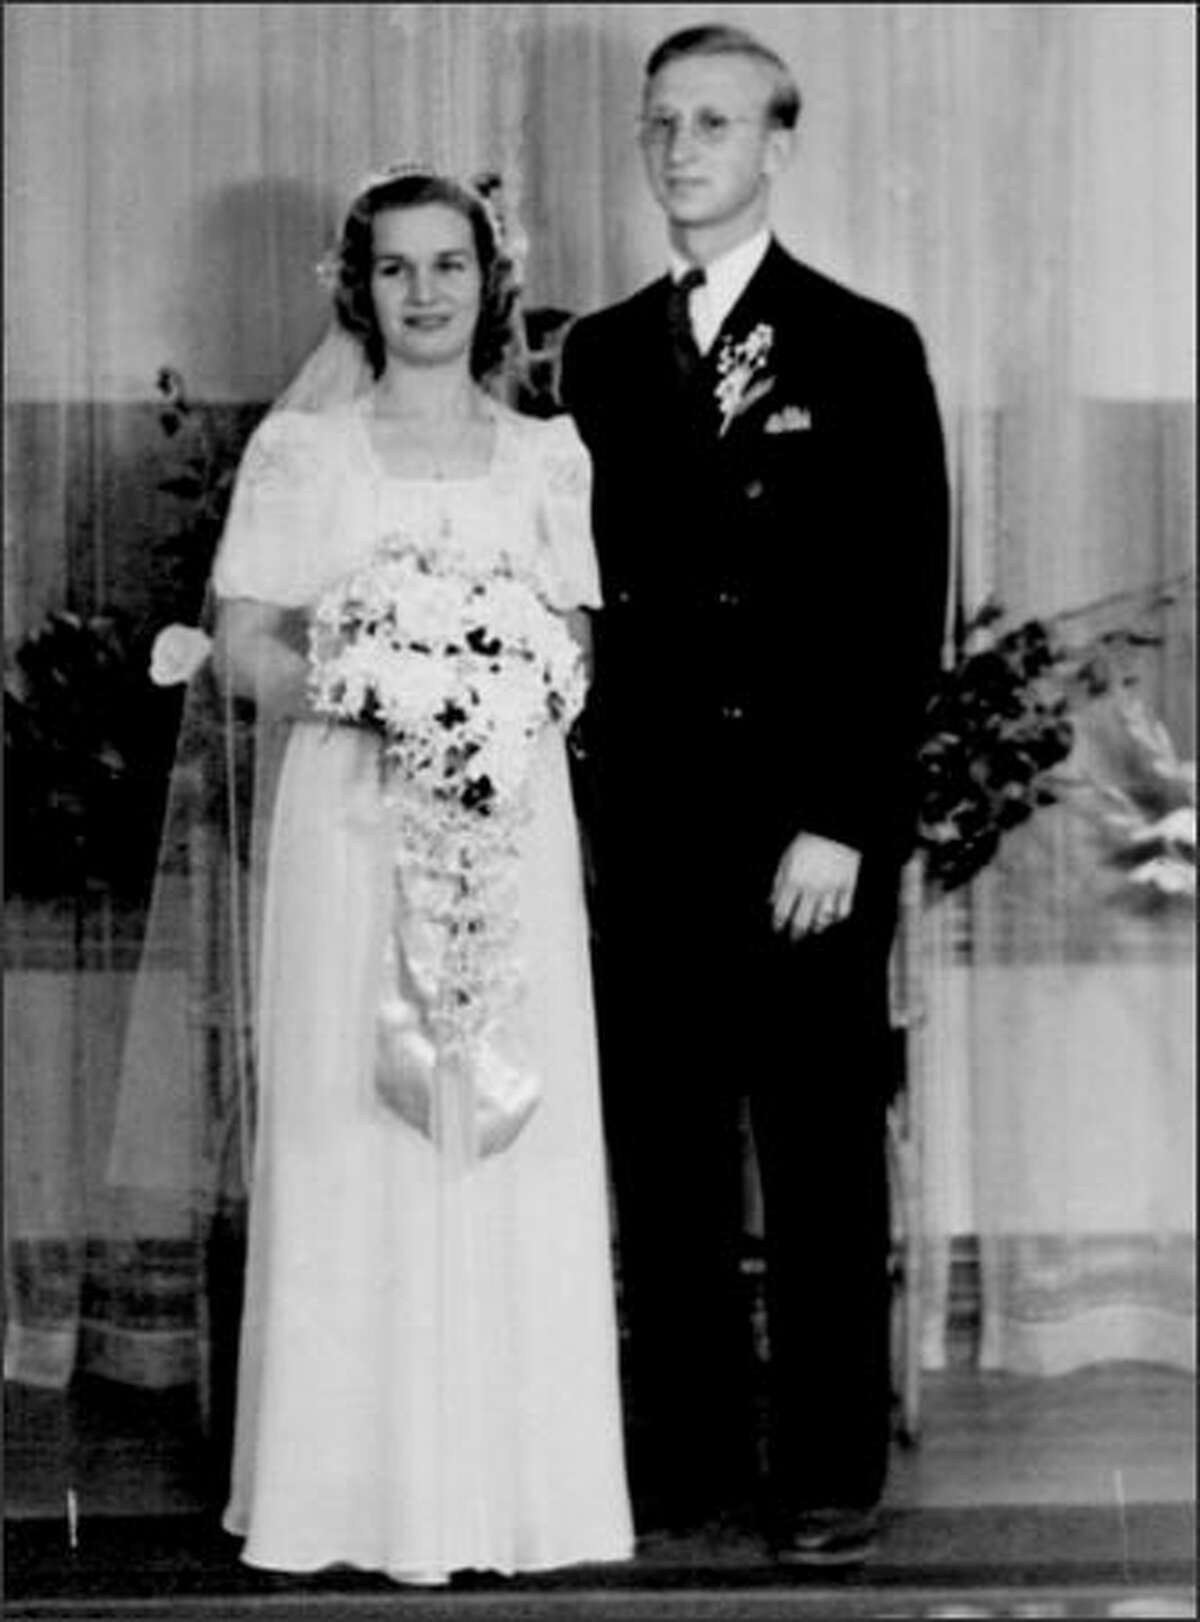 Marguerite and Kenneth W. Ambrose on their wedding day, June 1, 1940.